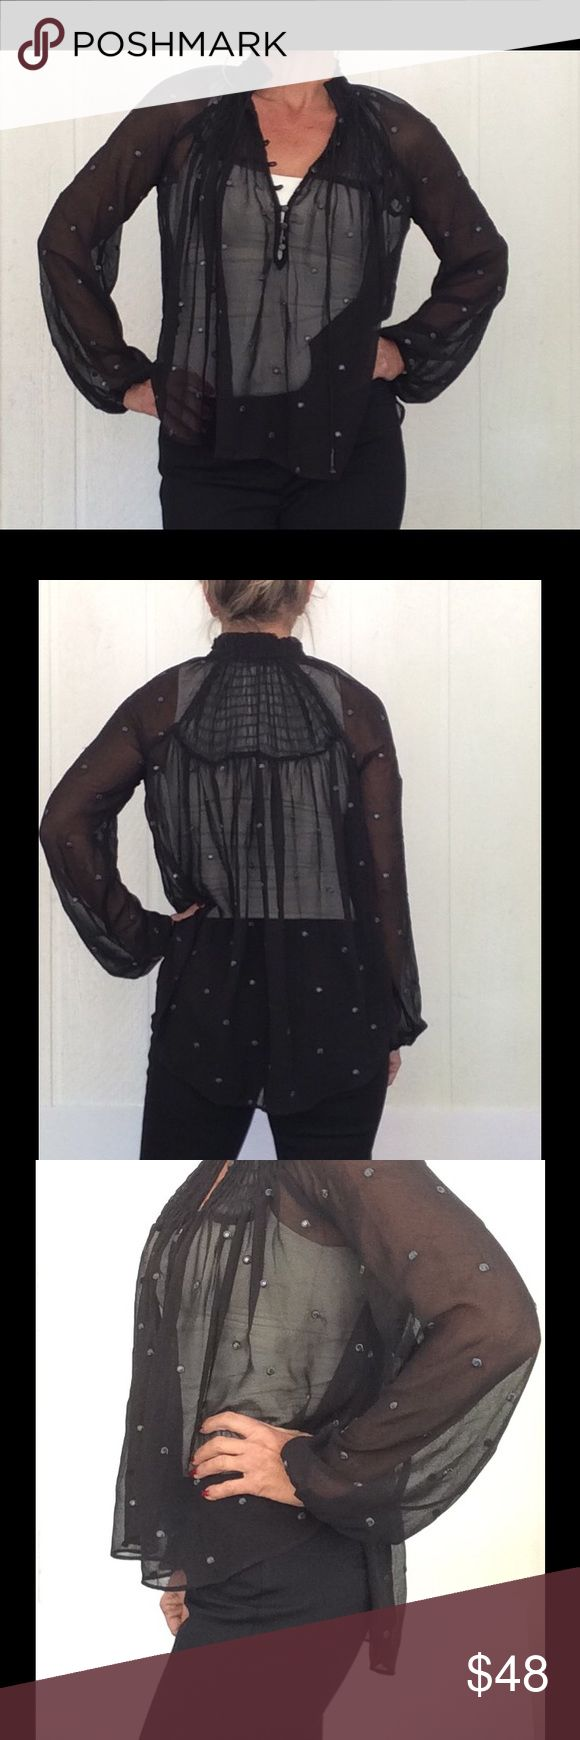 FREE PEOPLE BOHO CHIC SHEER BLACK TUNIC Flowy breezy sheer style. Perfectly paired with a camisole underneath. I wore white so you could see the detail and level of sheerness. Metallic thread dots with a sequin nested in the middle gives it a little extra sparkle. 8 metallic hook and d loop buttons at neckline with double tassle ties adorned with metallic beads at the end. Beautiful fit. No defects. Hi lo hem. Full sleeve with light elastic at cuffs. Gorgeous!  Size tag is missing but…